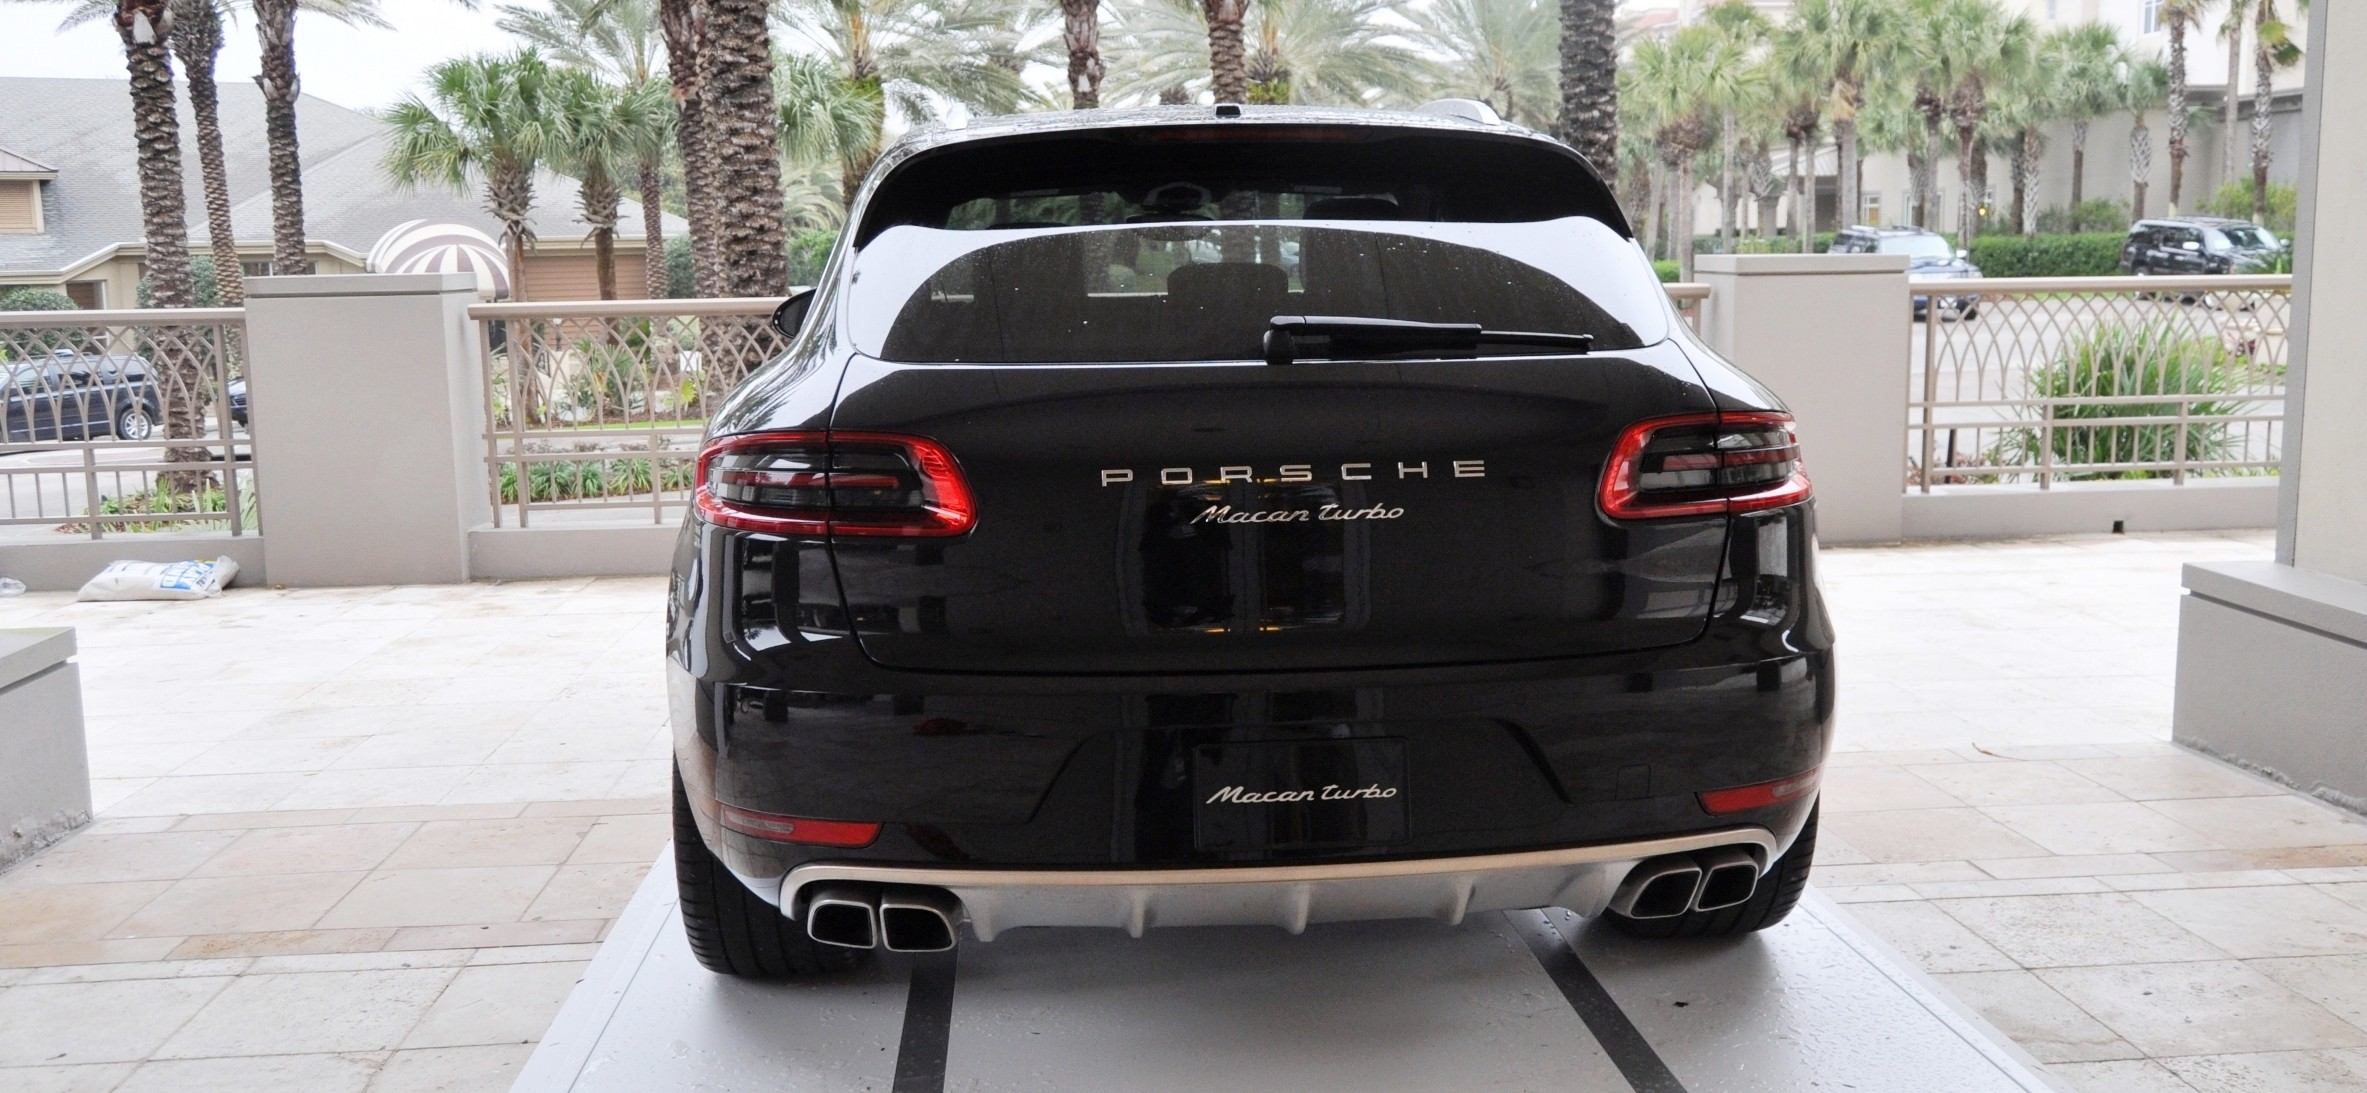 2015 Porsche Macan Turbo -- Looking Amazing, Athletic and Nimble -- 50+ Real-Life Photos Inside and Out 22